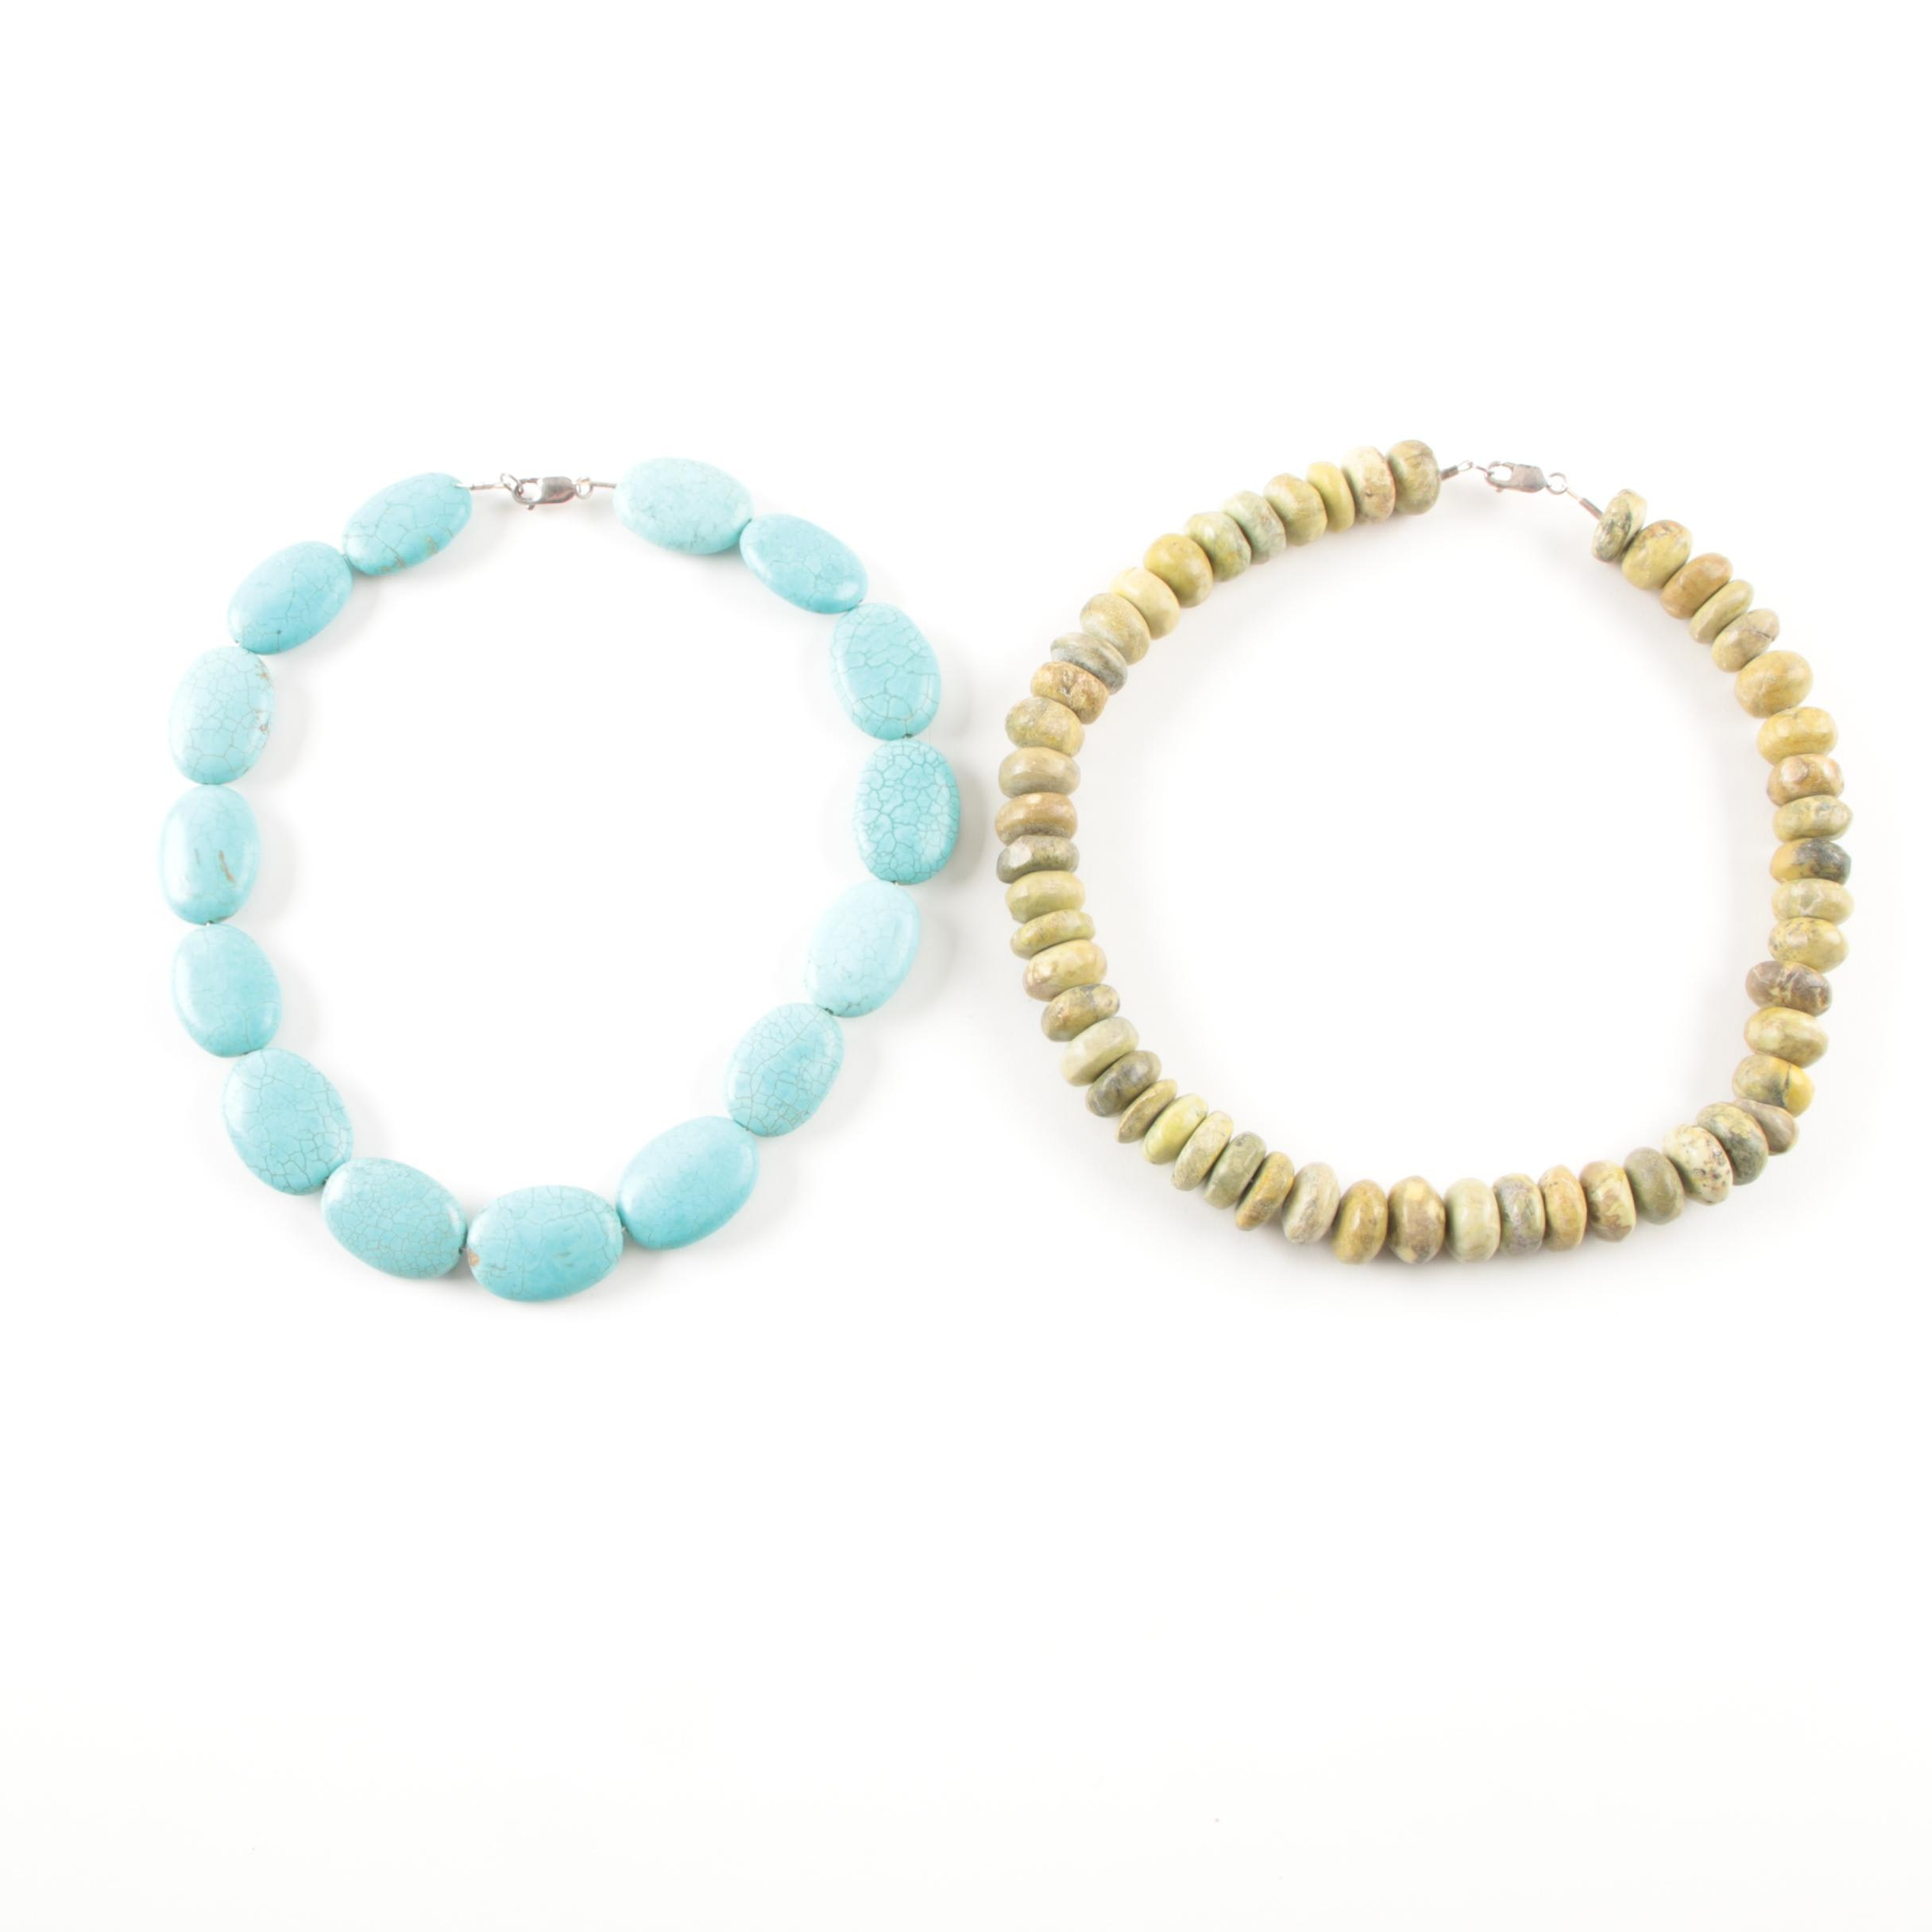 Sterling Silver and Beaded Necklaces With Imitation Turquoise